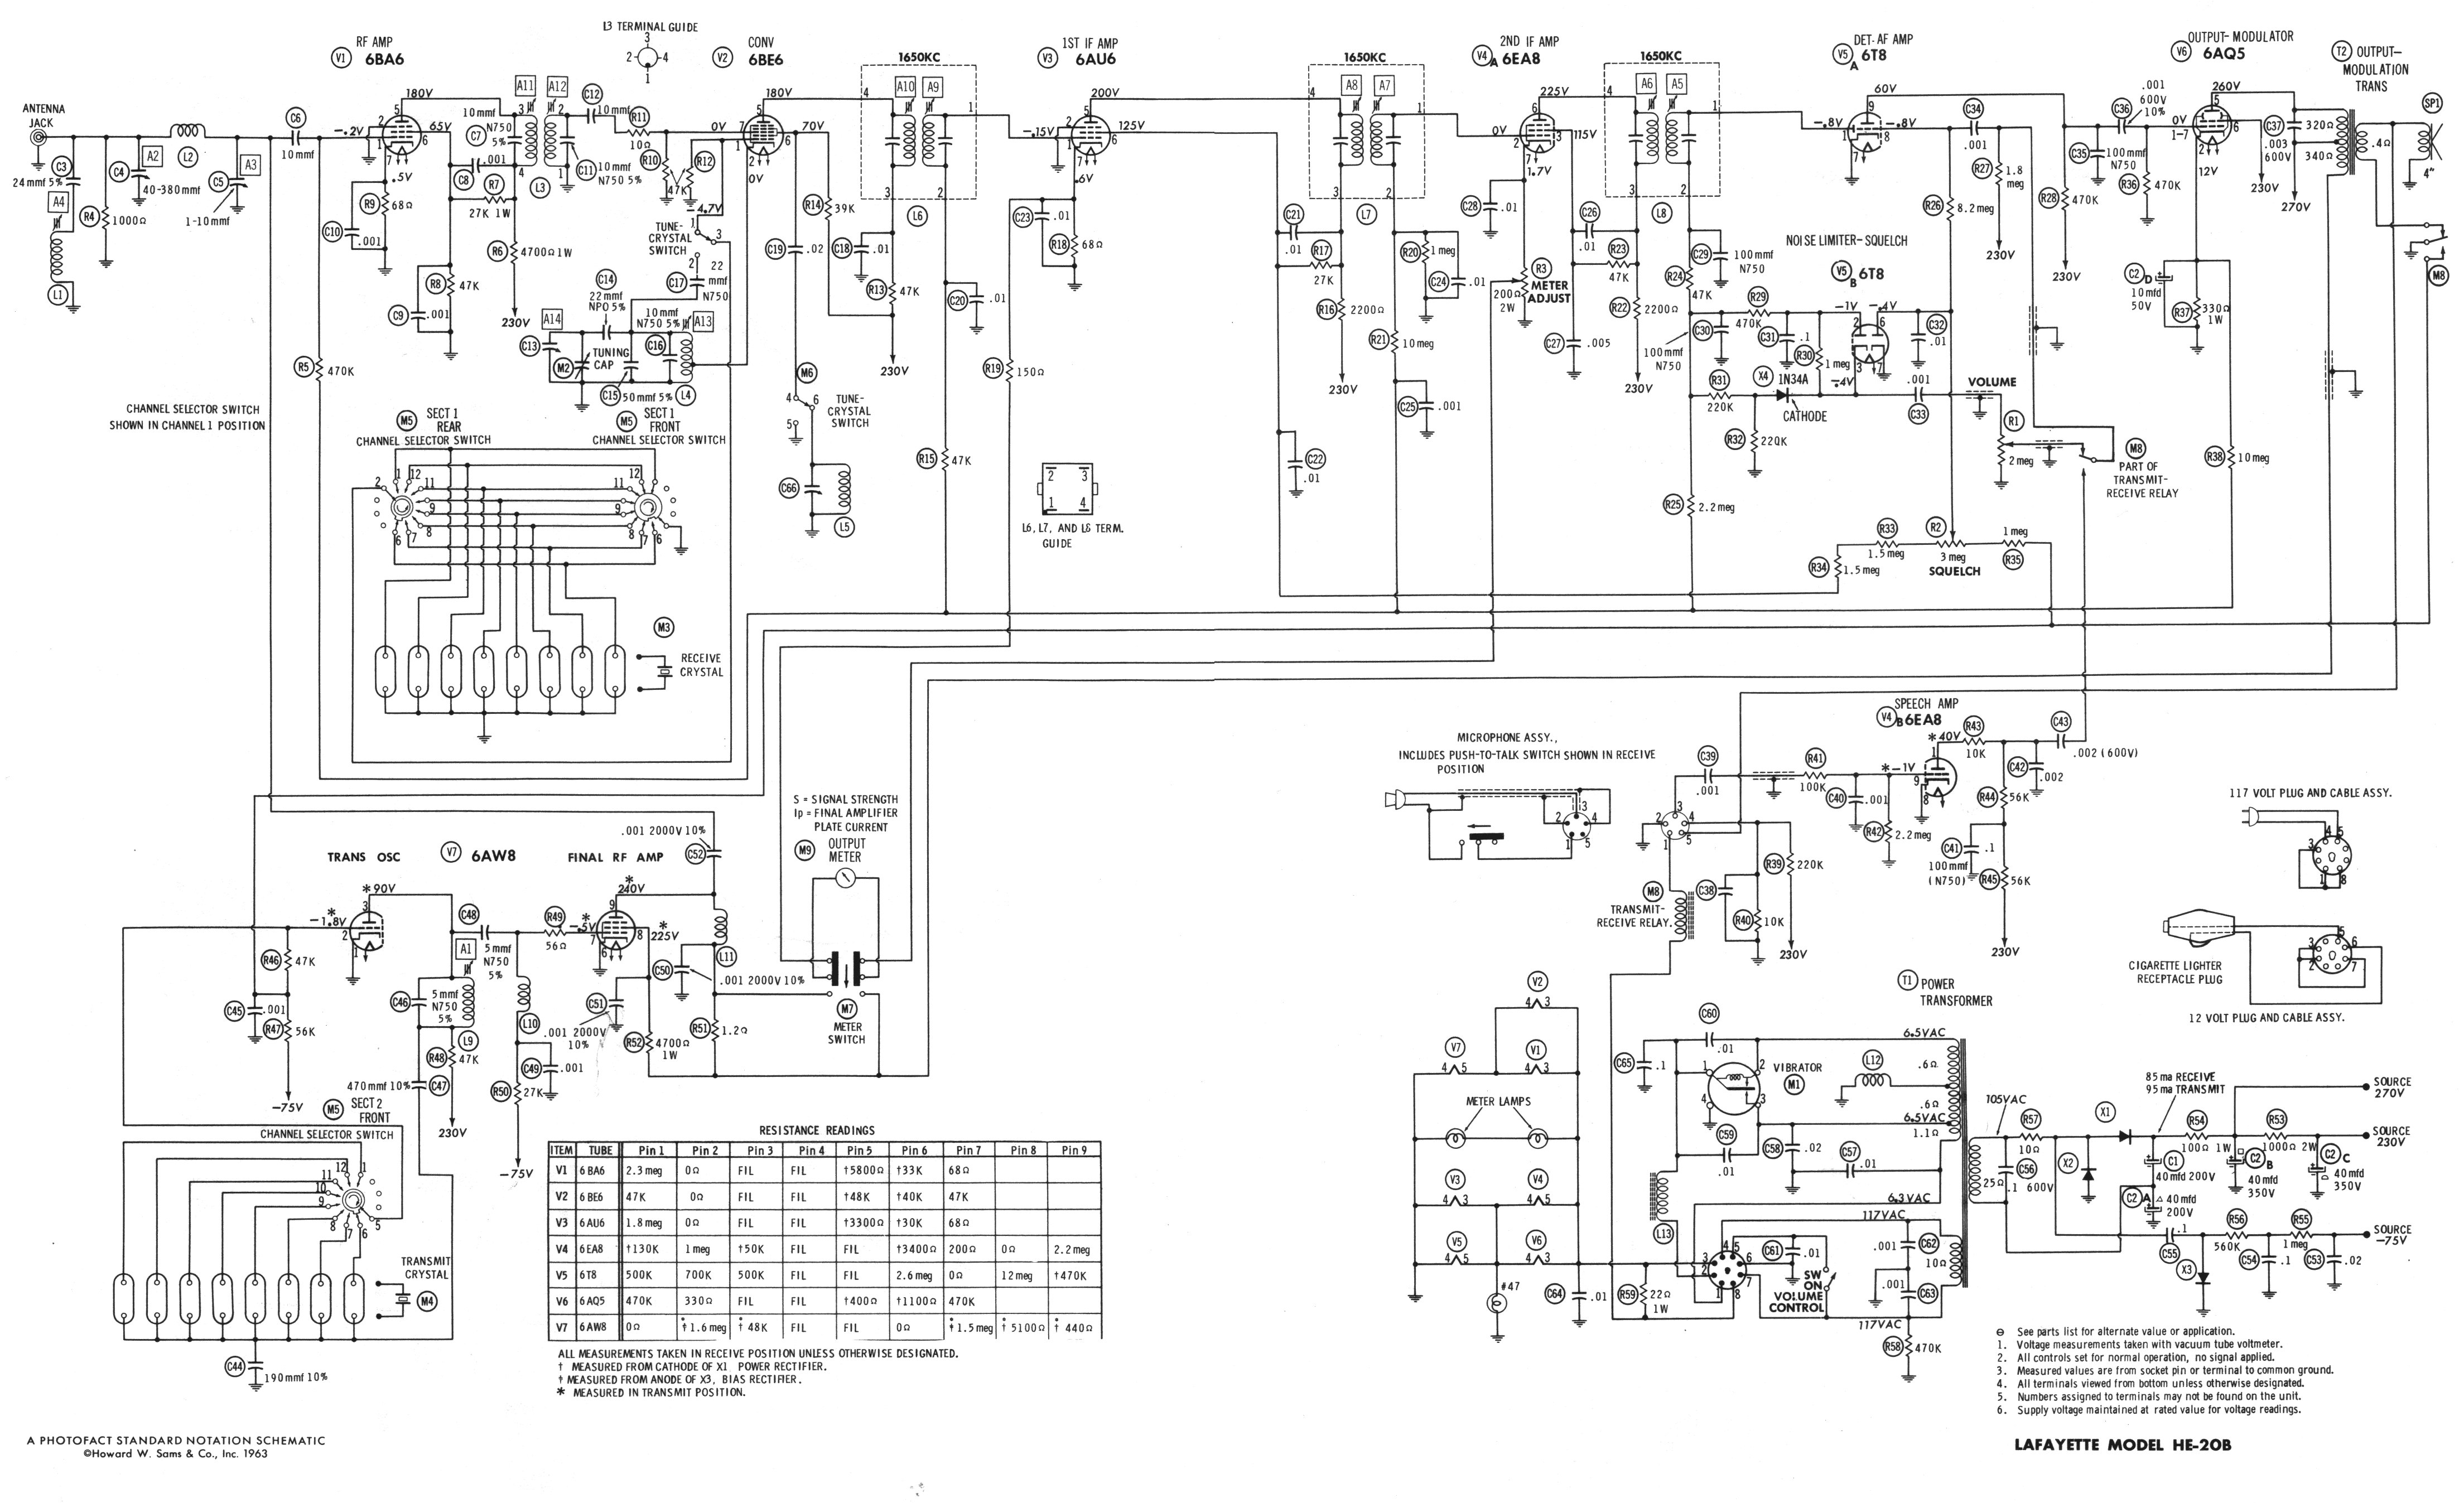 Lafayette Wiring Diagrams Chevrolet Impala 2007 Wiring Diagram ... on troubleshooting diagrams, smart car diagrams, electronic circuit diagrams, gmc fuse box diagrams, internet of things diagrams, snatch block diagrams, motor diagrams, battery diagrams, pinout diagrams, lighting diagrams, sincgars radio configurations diagrams, friendship bracelet diagrams, hvac diagrams, honda motorcycle repair diagrams, electrical diagrams, led circuit diagrams, series and parallel circuits diagrams, engine diagrams, transformer diagrams, switch diagrams,